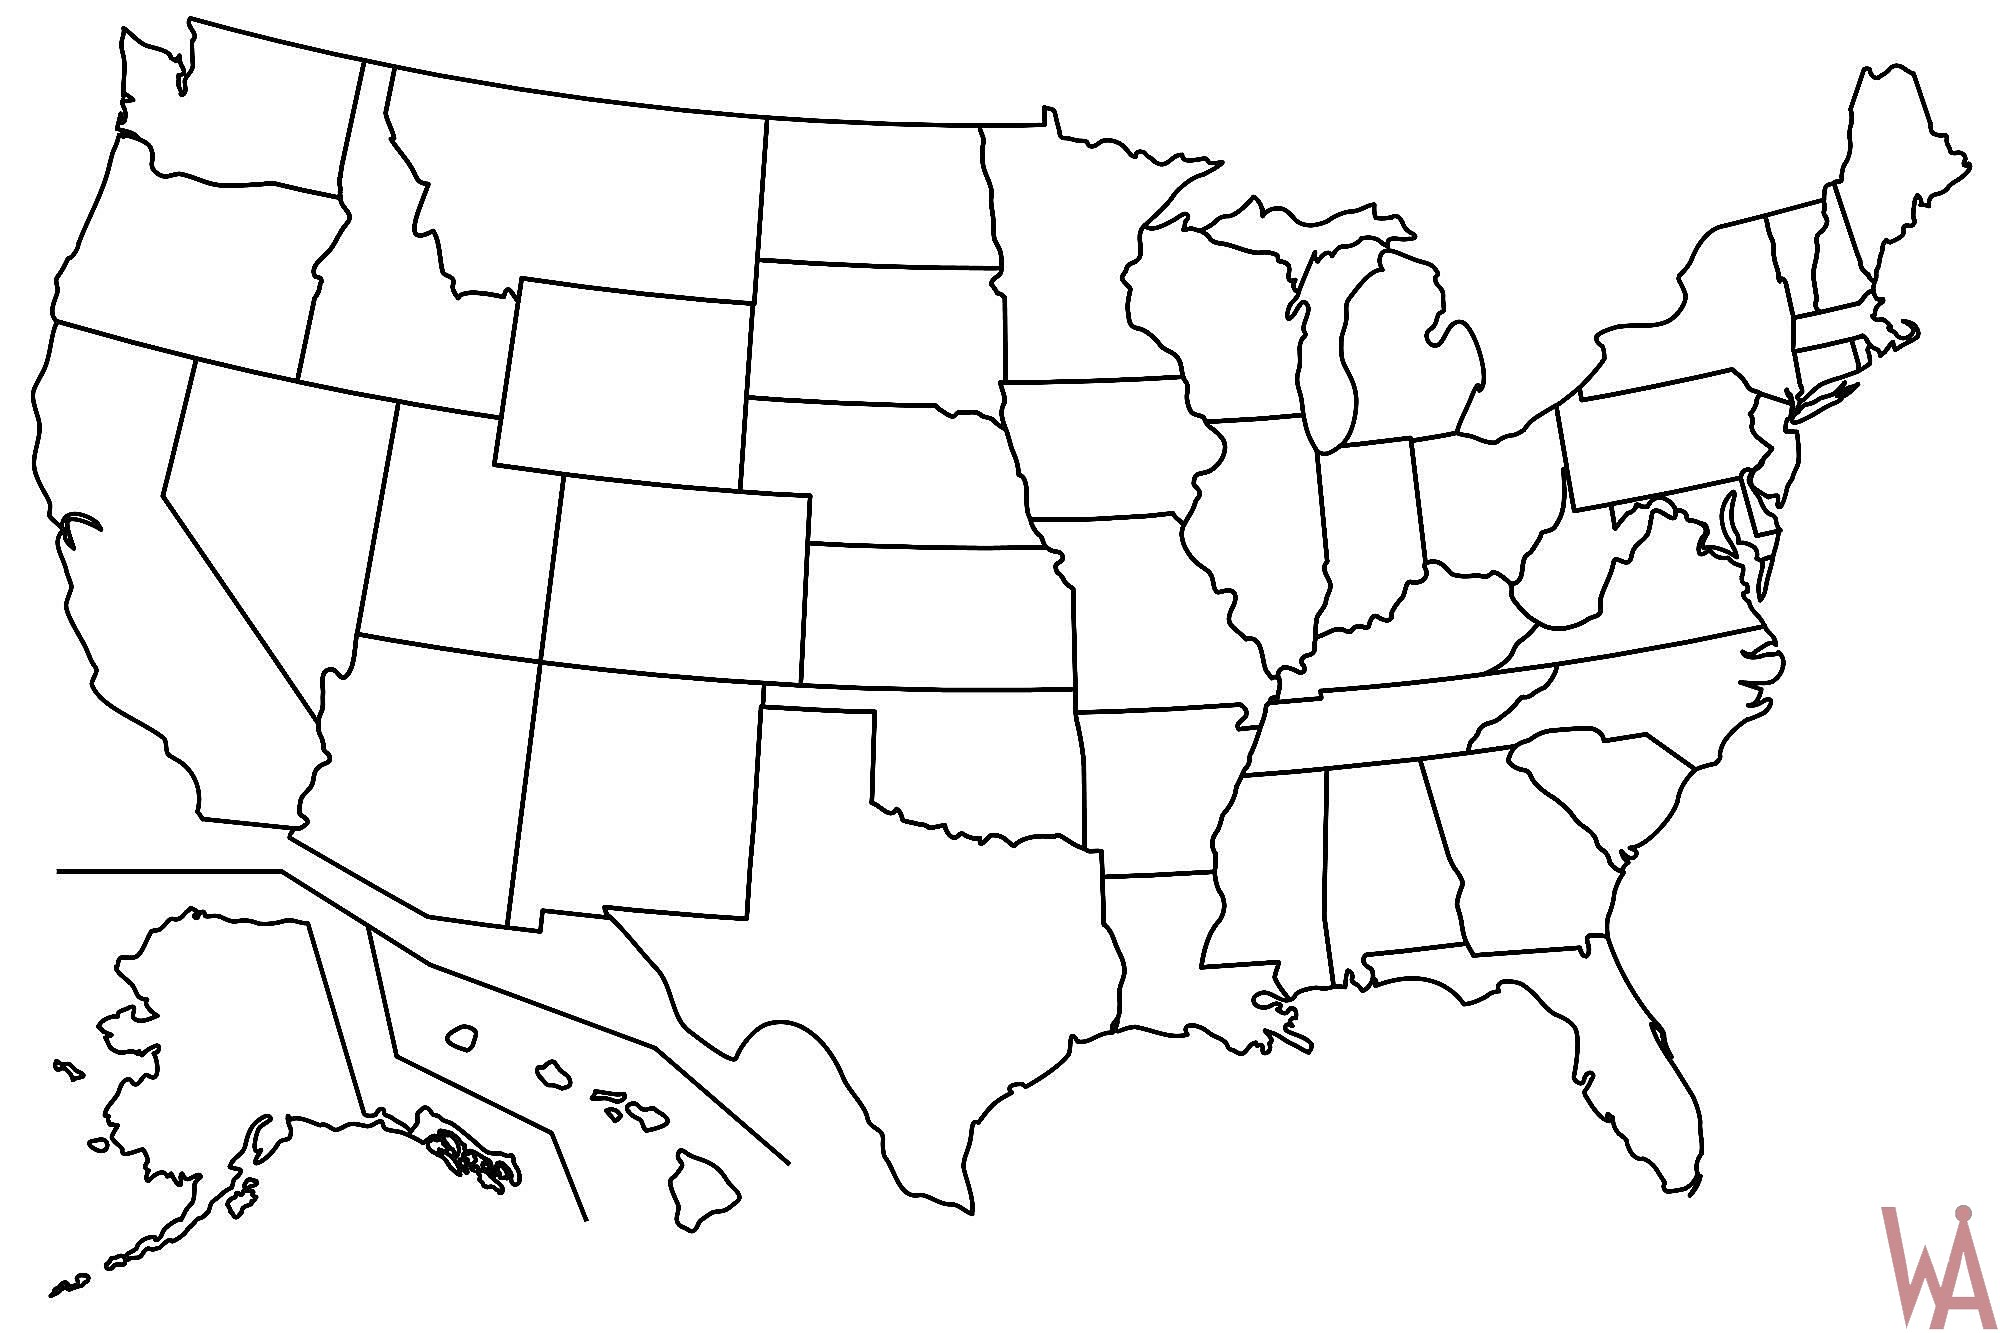 Outline Map Of Usa Outline Maps Of The USA | WhatsAnswer